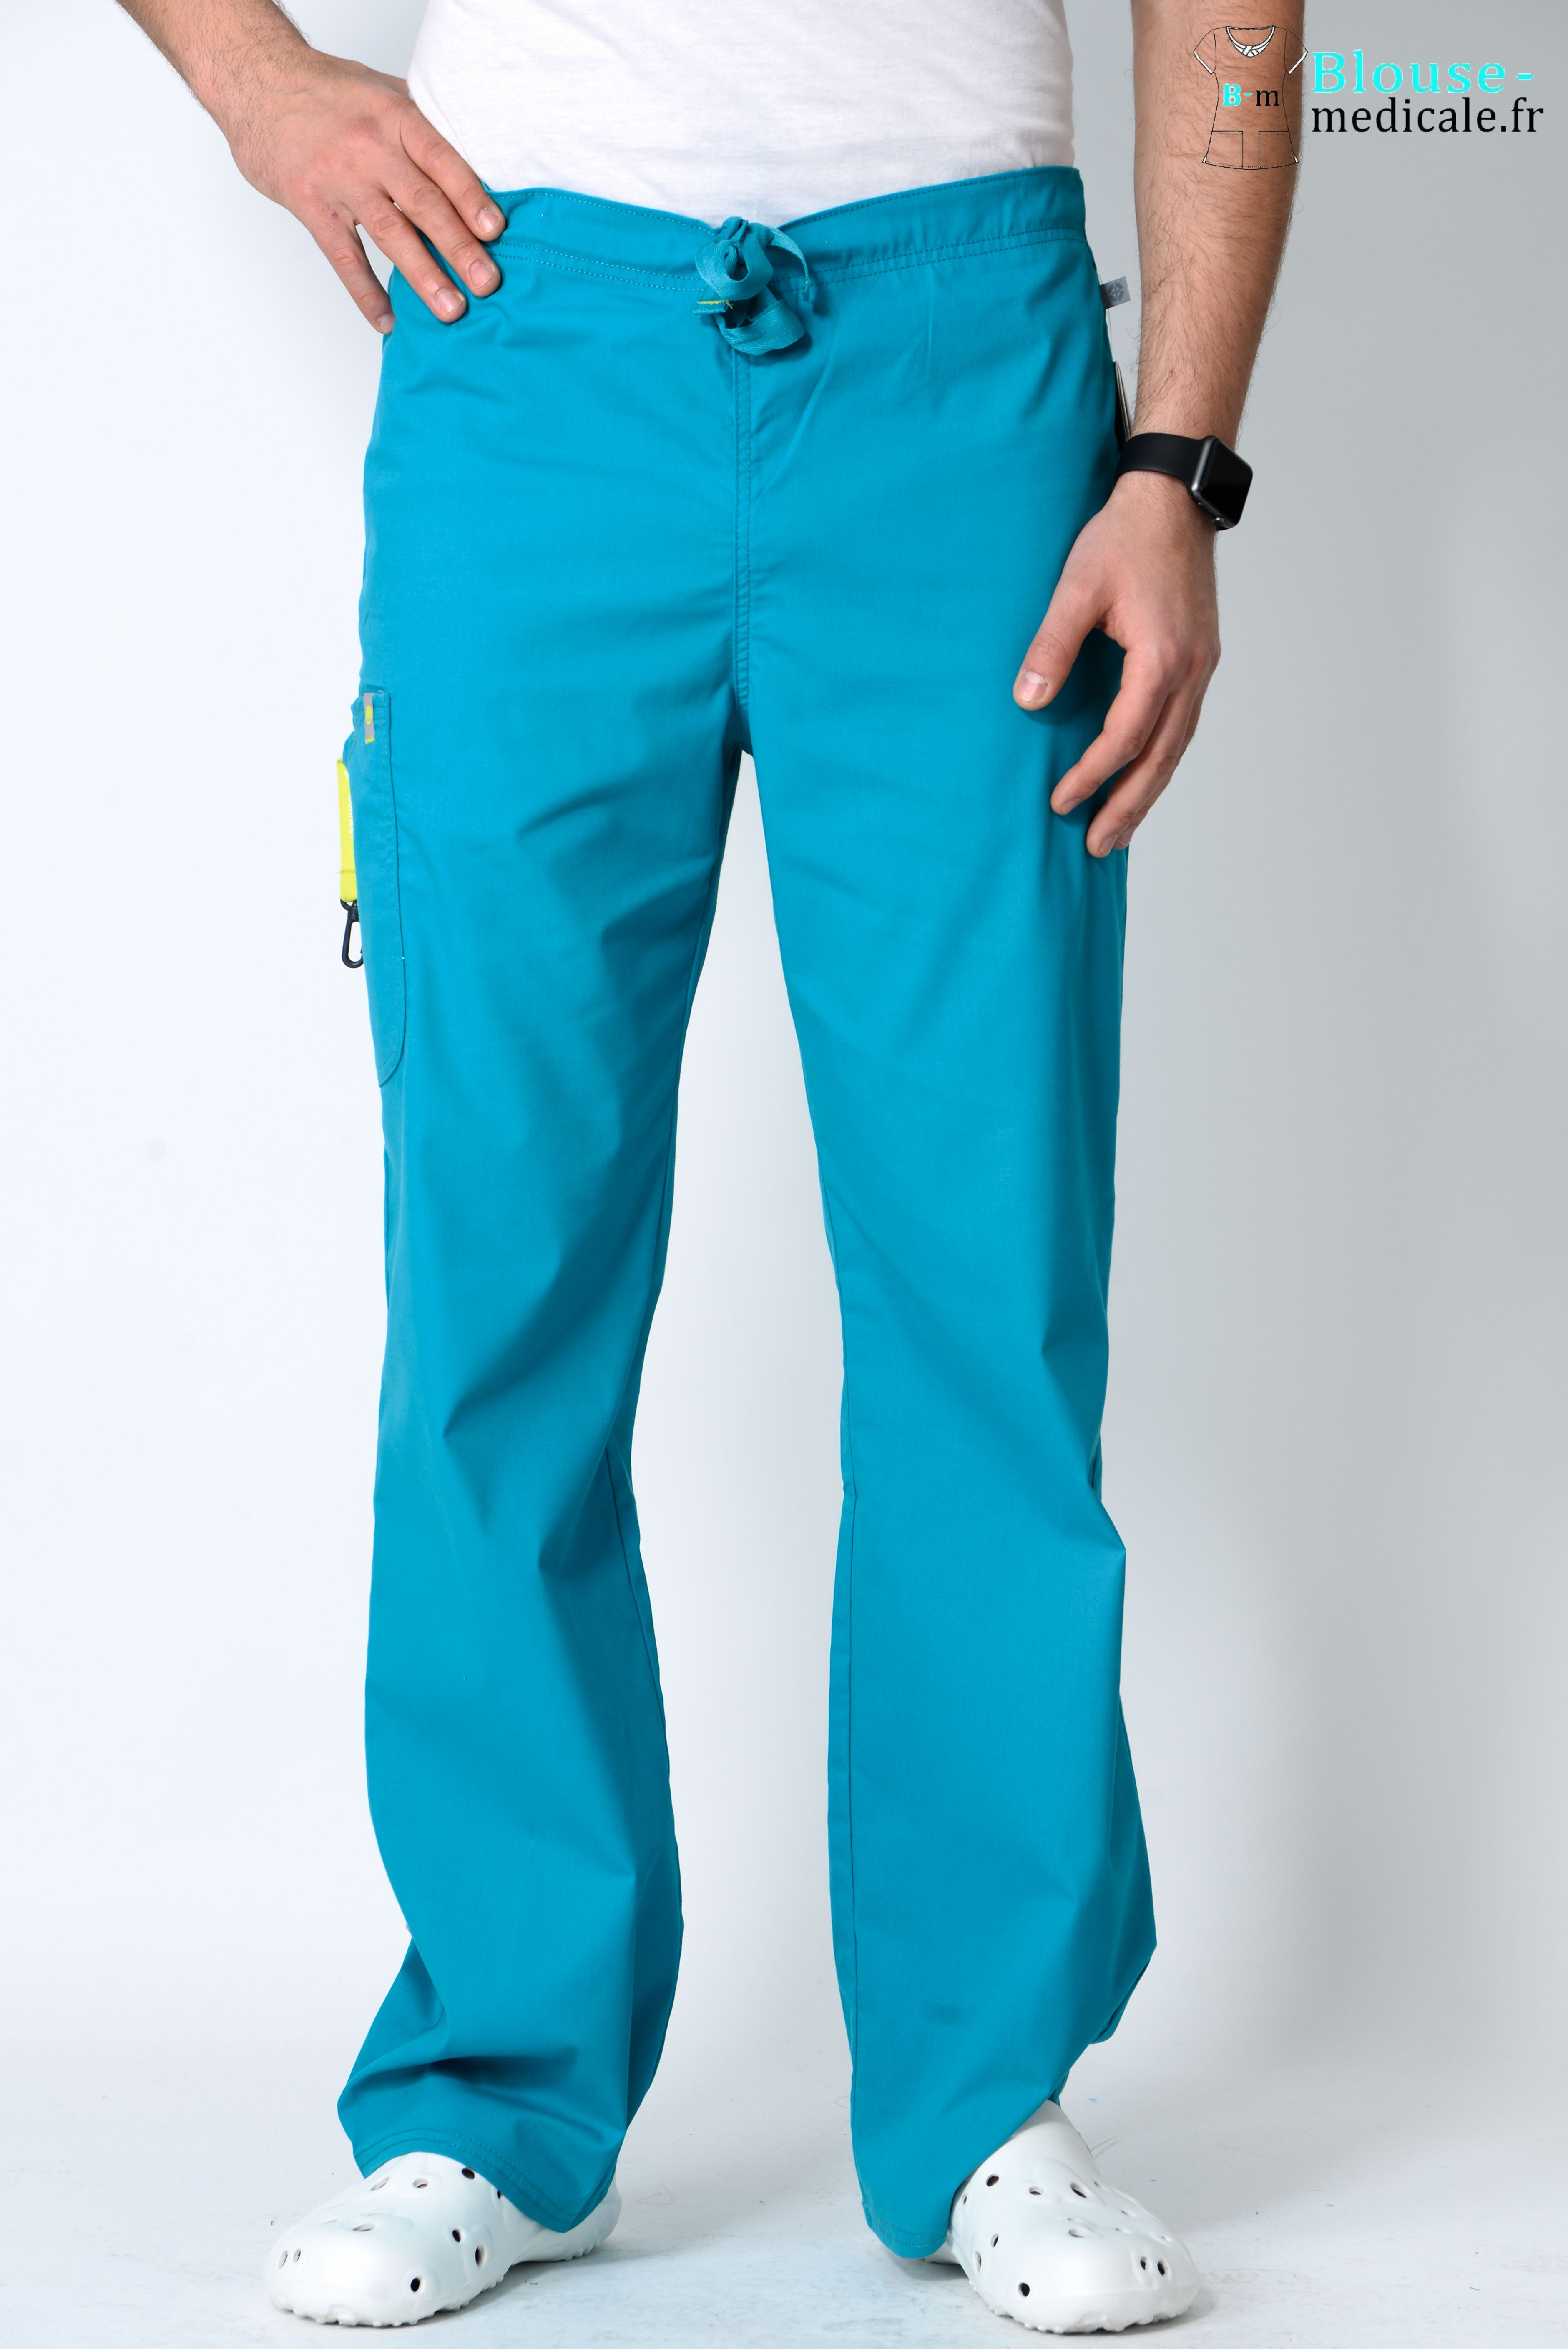 pantalon medical anti taches 16001AB